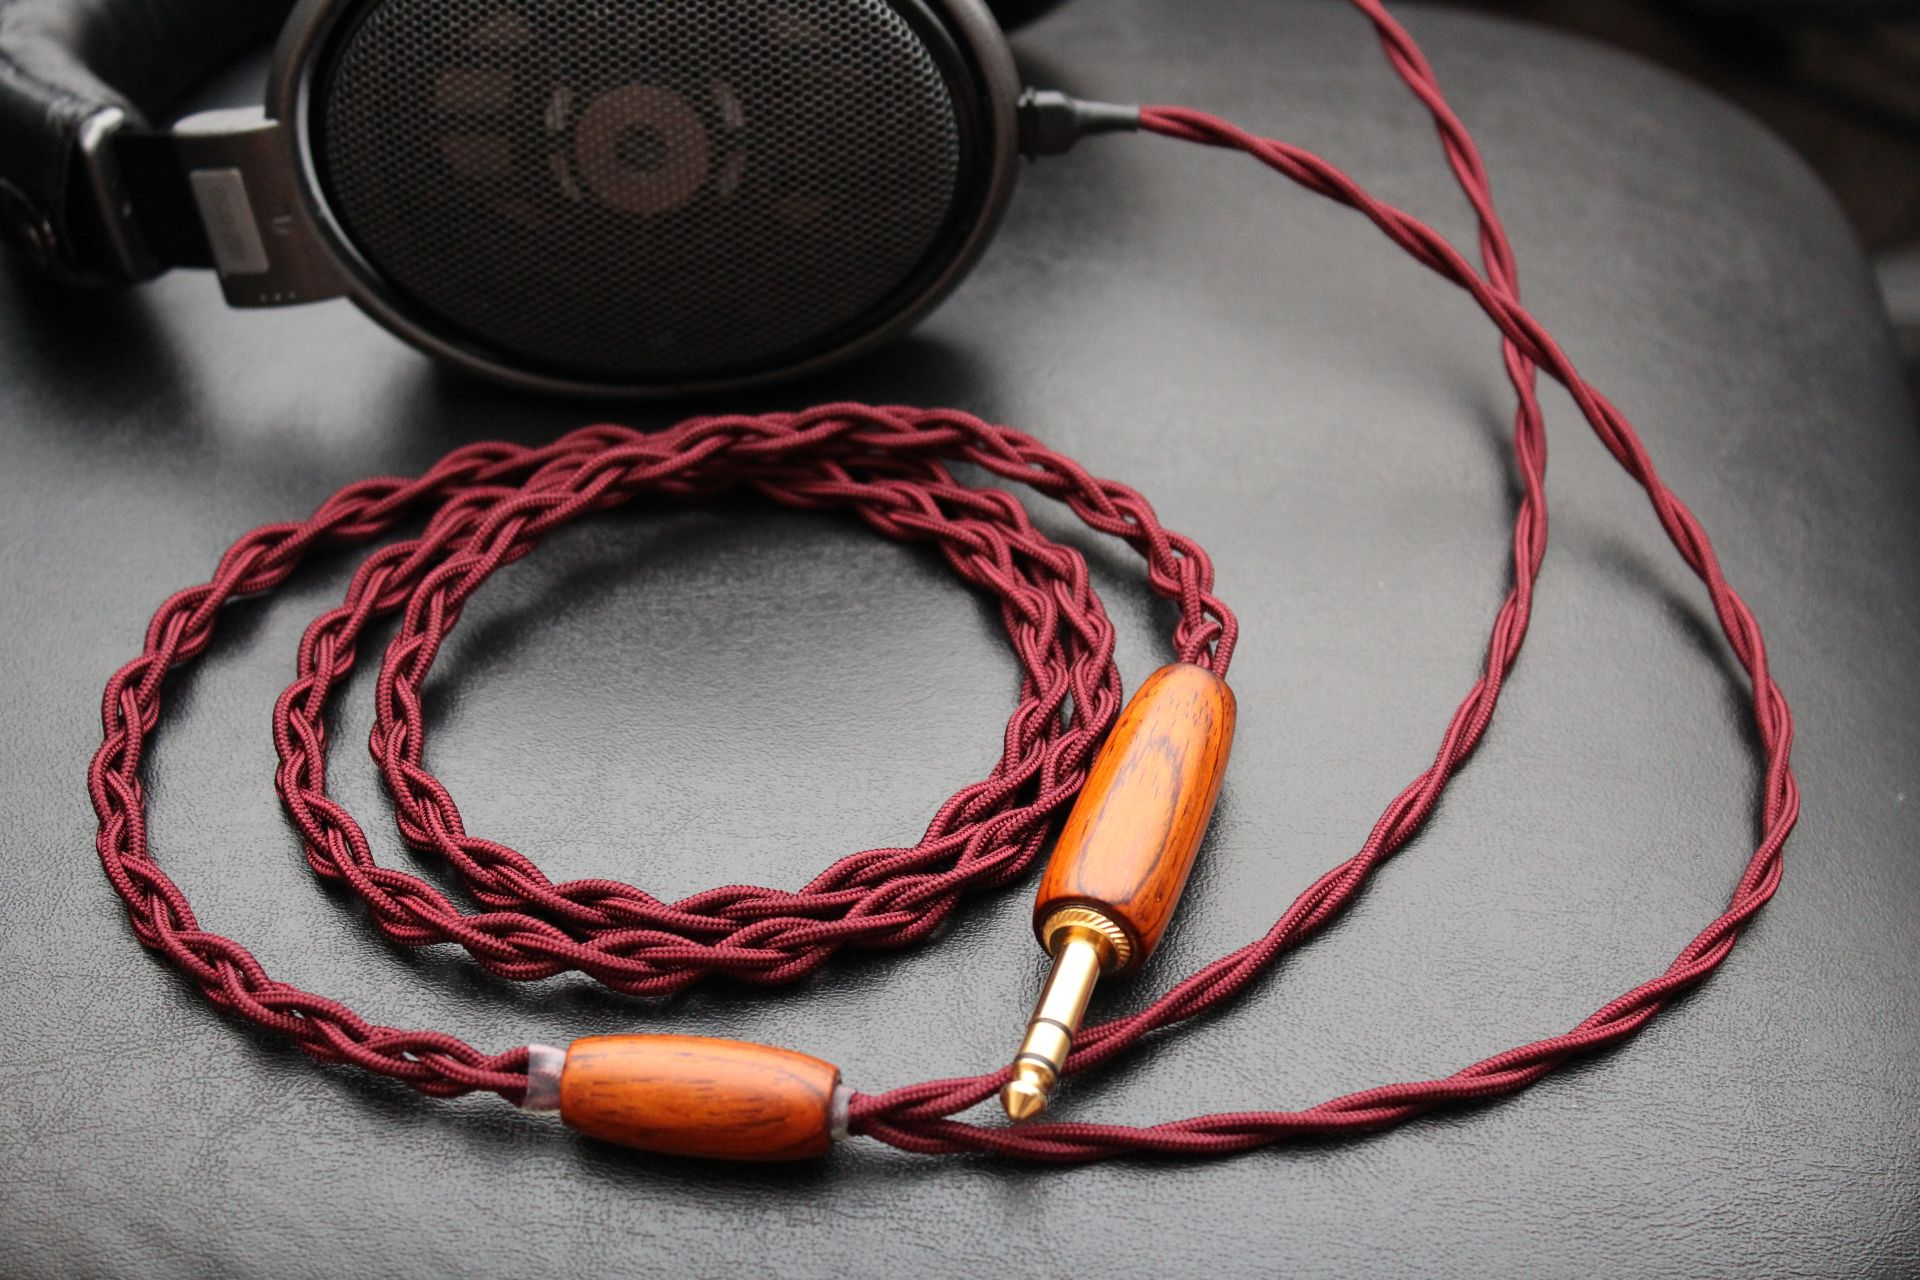 DIY Cable Gallery!! | Page 681 | Headphone Reviews and